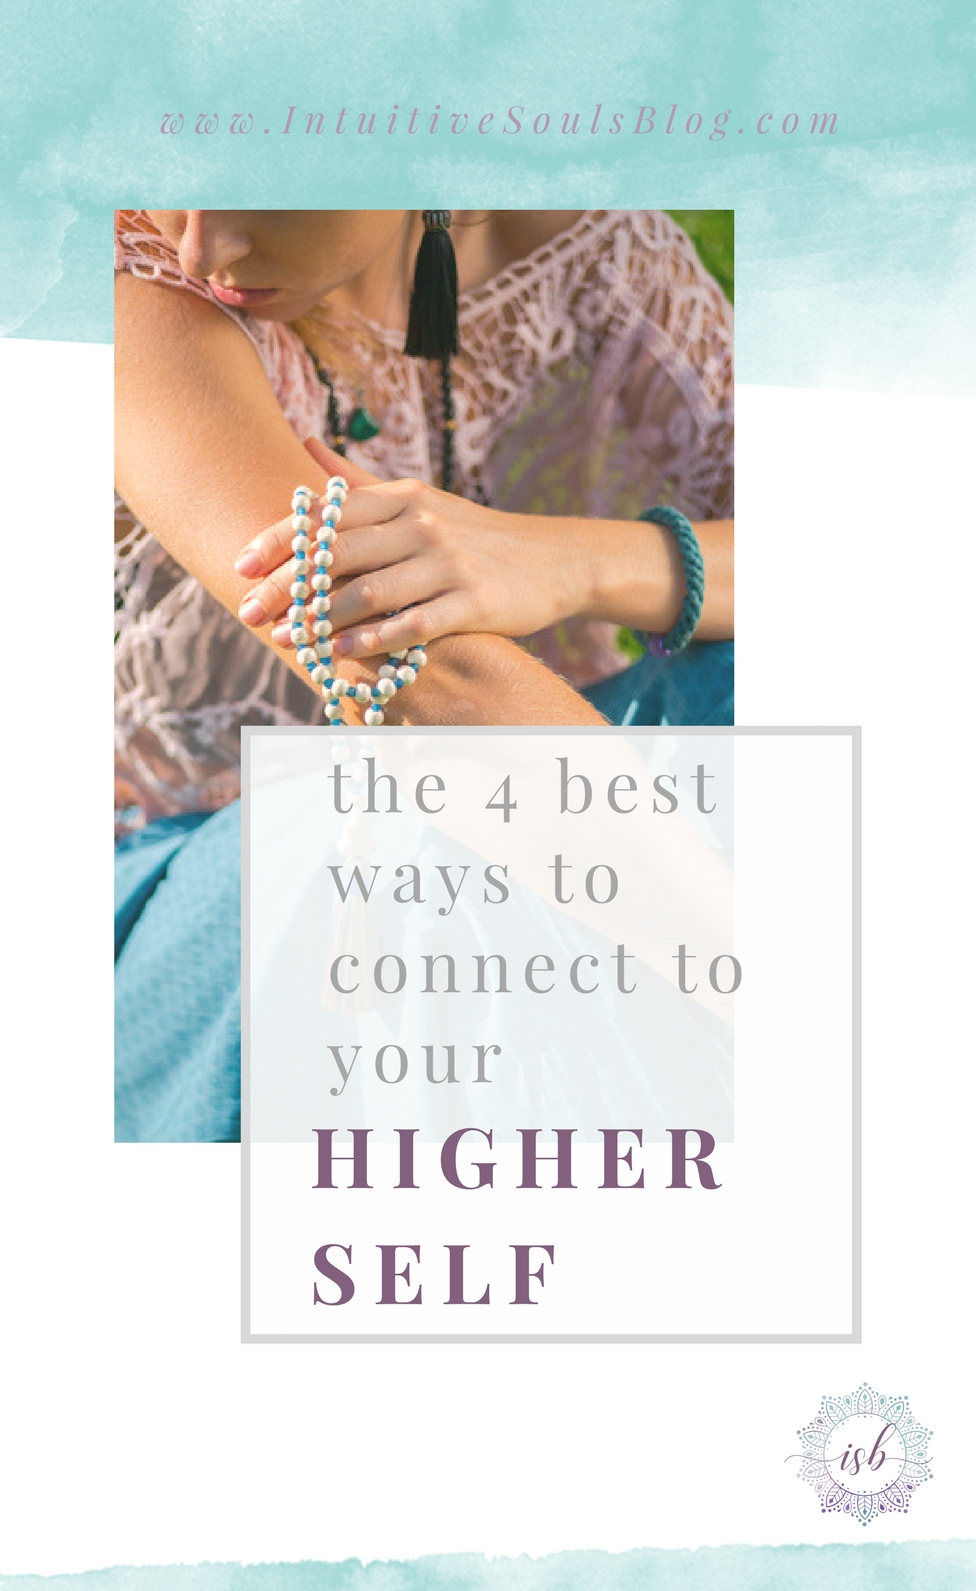 Truth time: Life is smoother when you're connected to your Higher Self. Here are 4 simple ways to tune into your HS, signs that it's